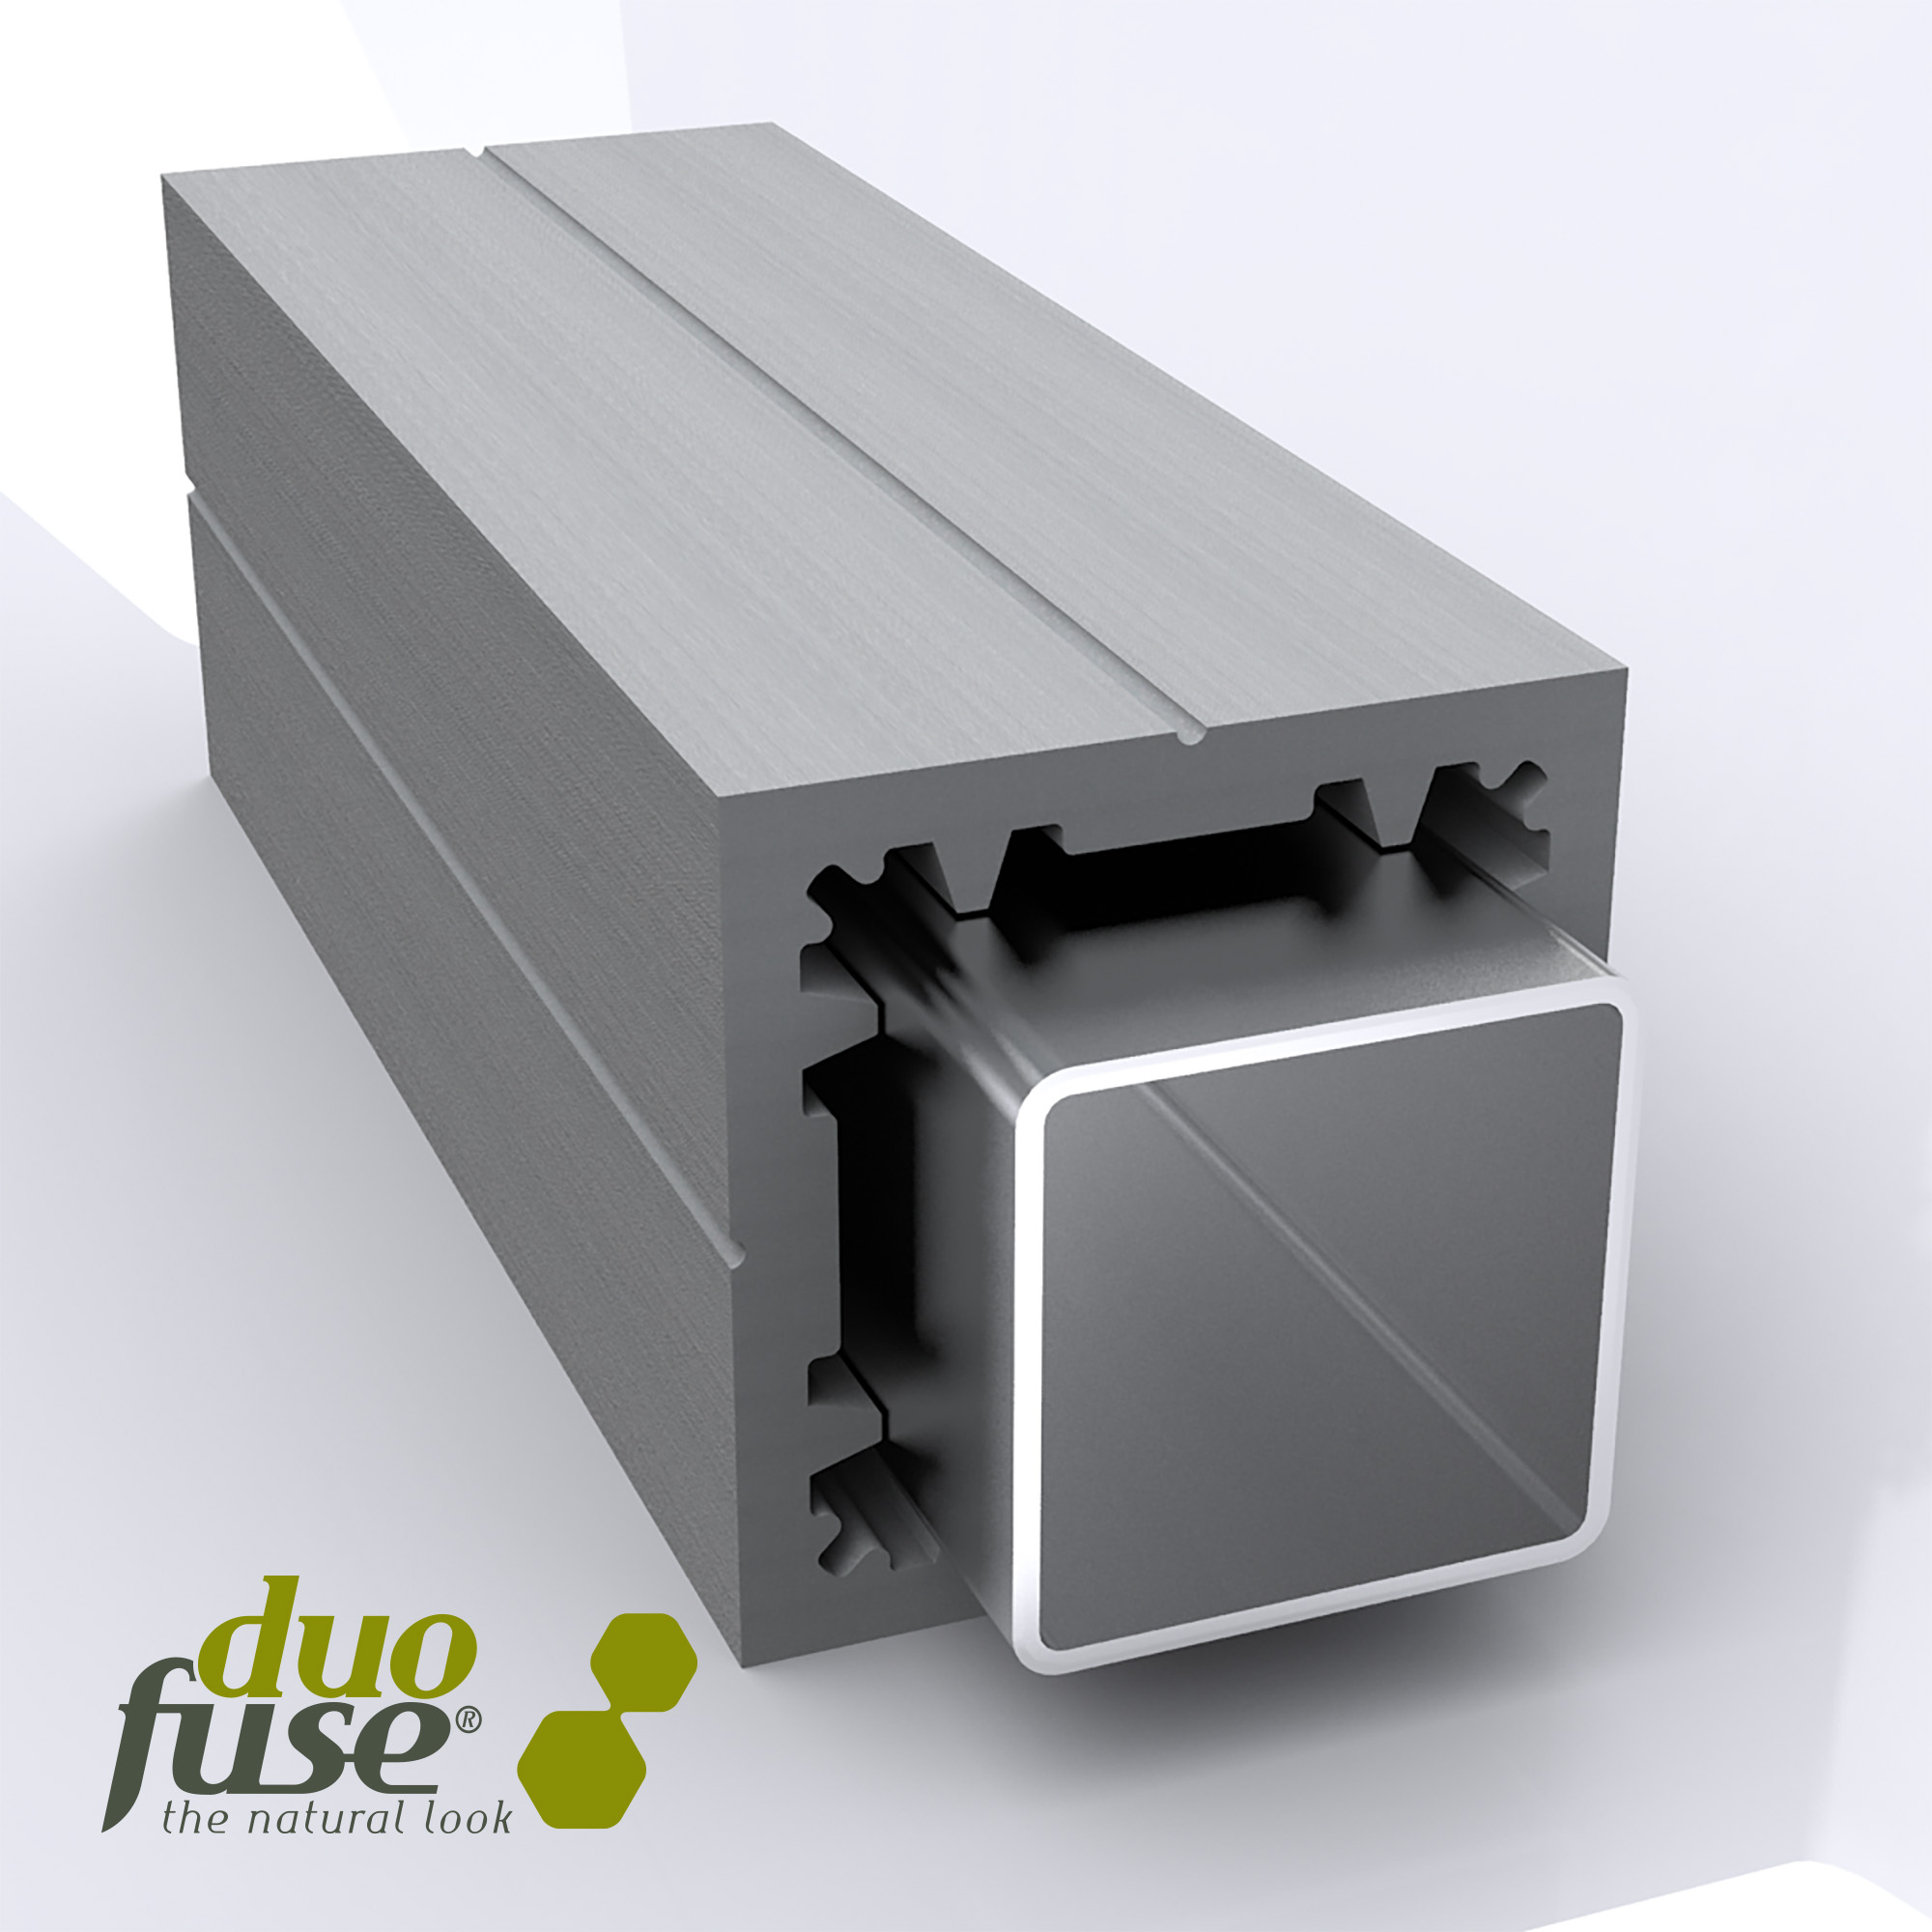 Duofuse | Composiet poortpaal | Graphite Black